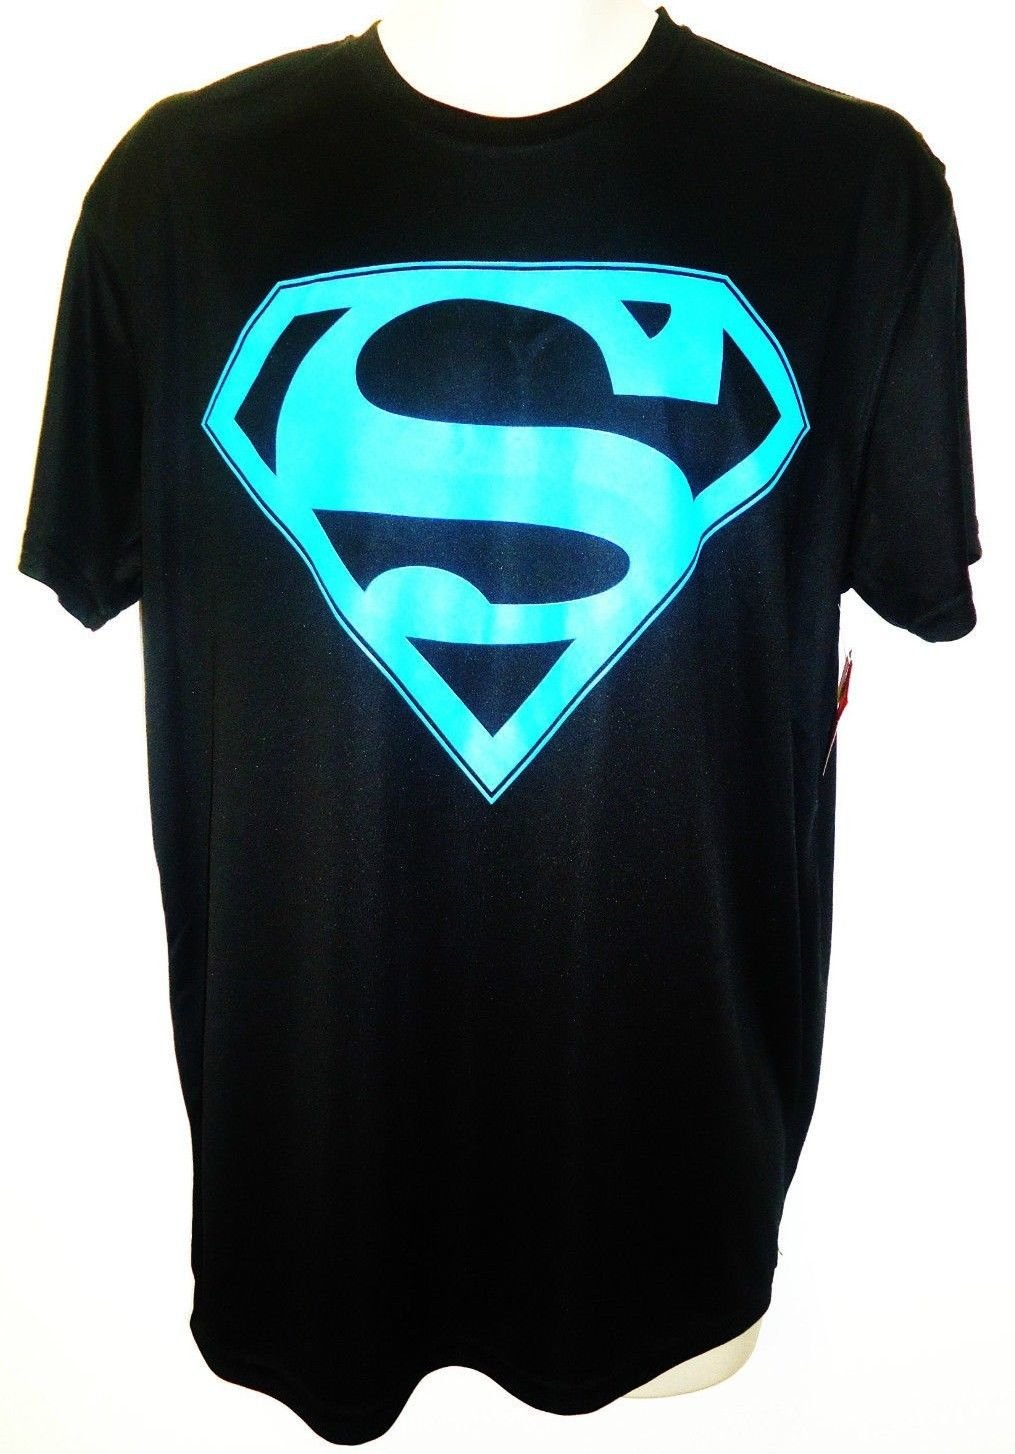 DC COMICS - SUPERMAN - BLACK - BLUE - MUSCLE - TEE - LARGE - BRAND NEW - BATMAN